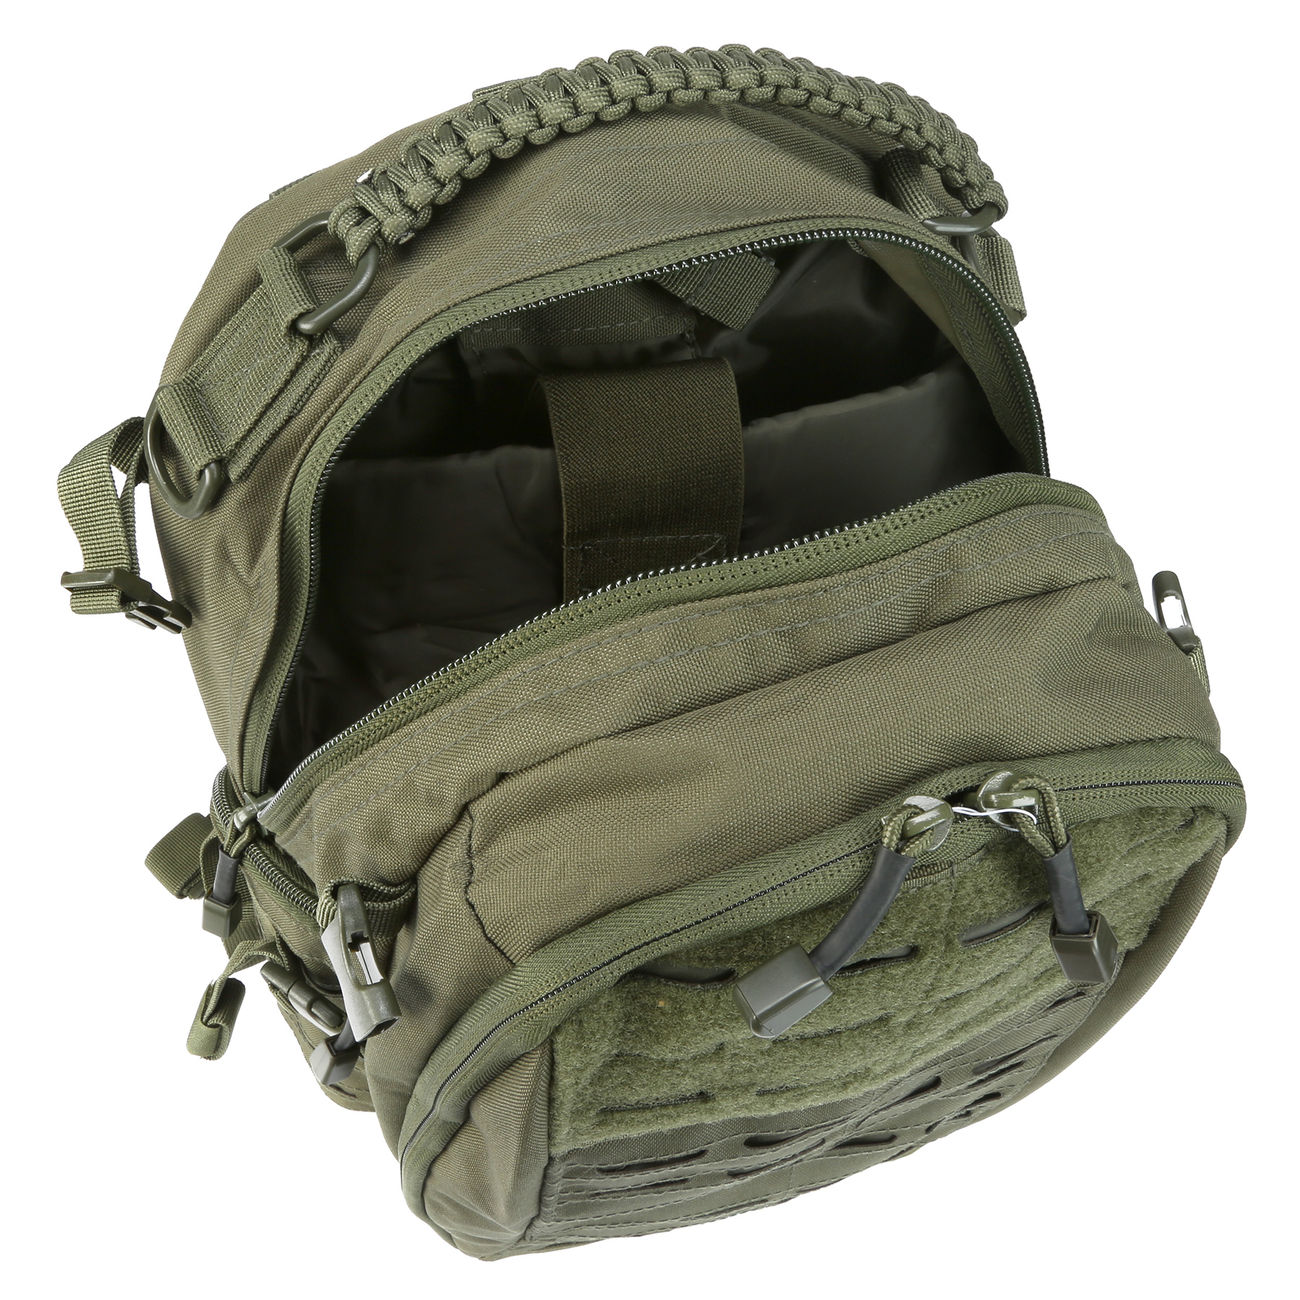 Mil-Tec Rucksack Mission Pack Laser Cut Small oliv 6